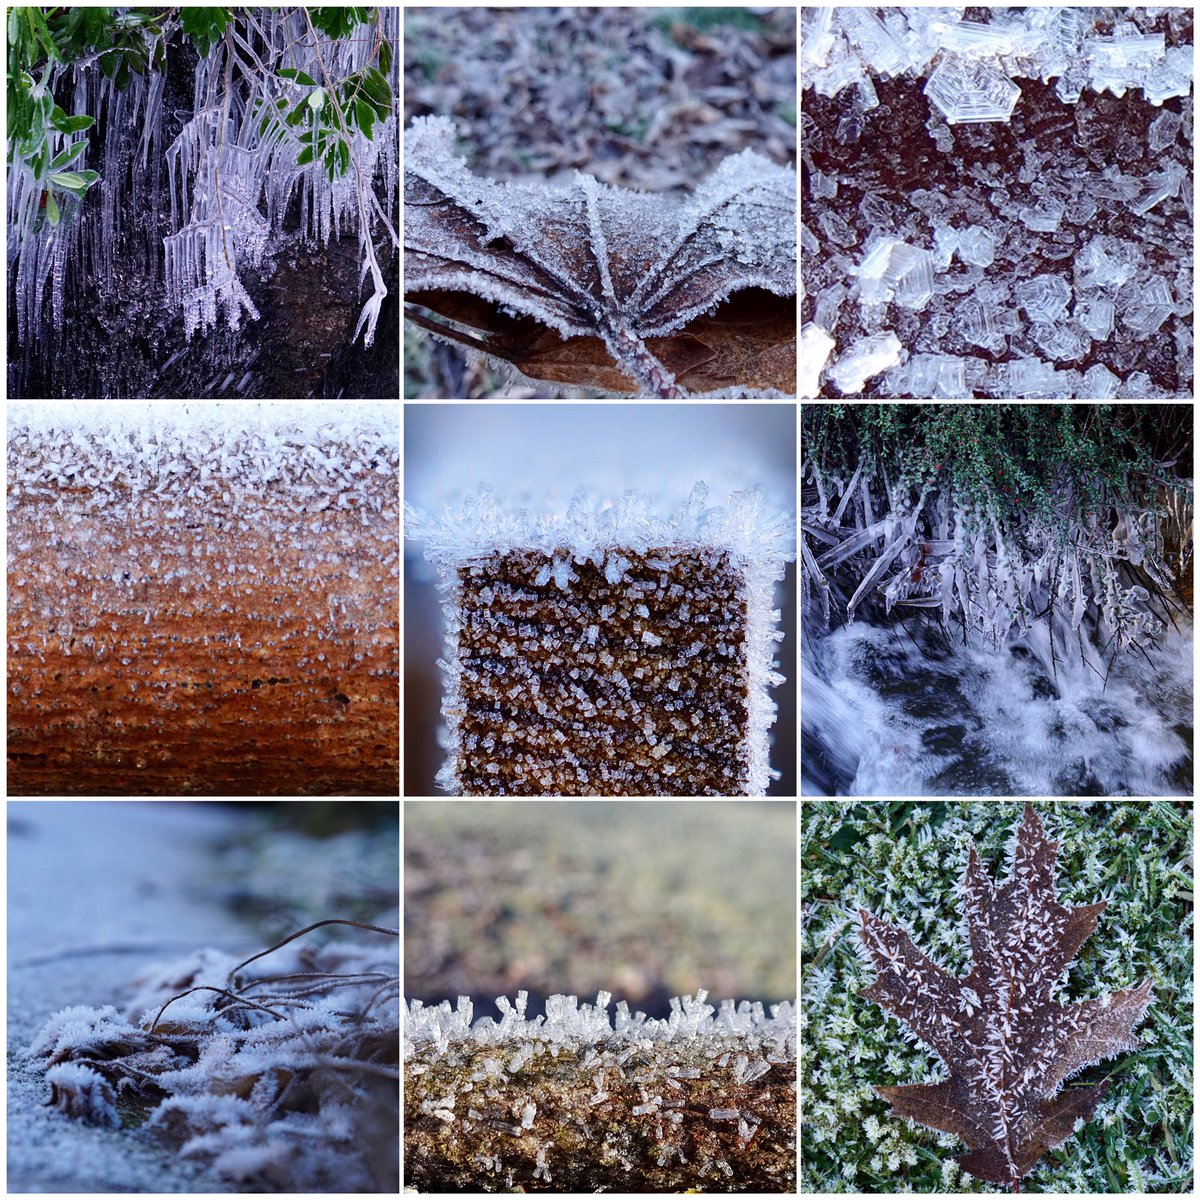 I really enjoyed my walk this #morning in the #sunshine #cold and #frost Just look how #beautiful #nature is. @Natures_Voice @plants #icicles #leaves #fence #posts @Britnatureguide It took me hours to thaw out but you know what, it was worth every second. #MentalHealthMatters 😊